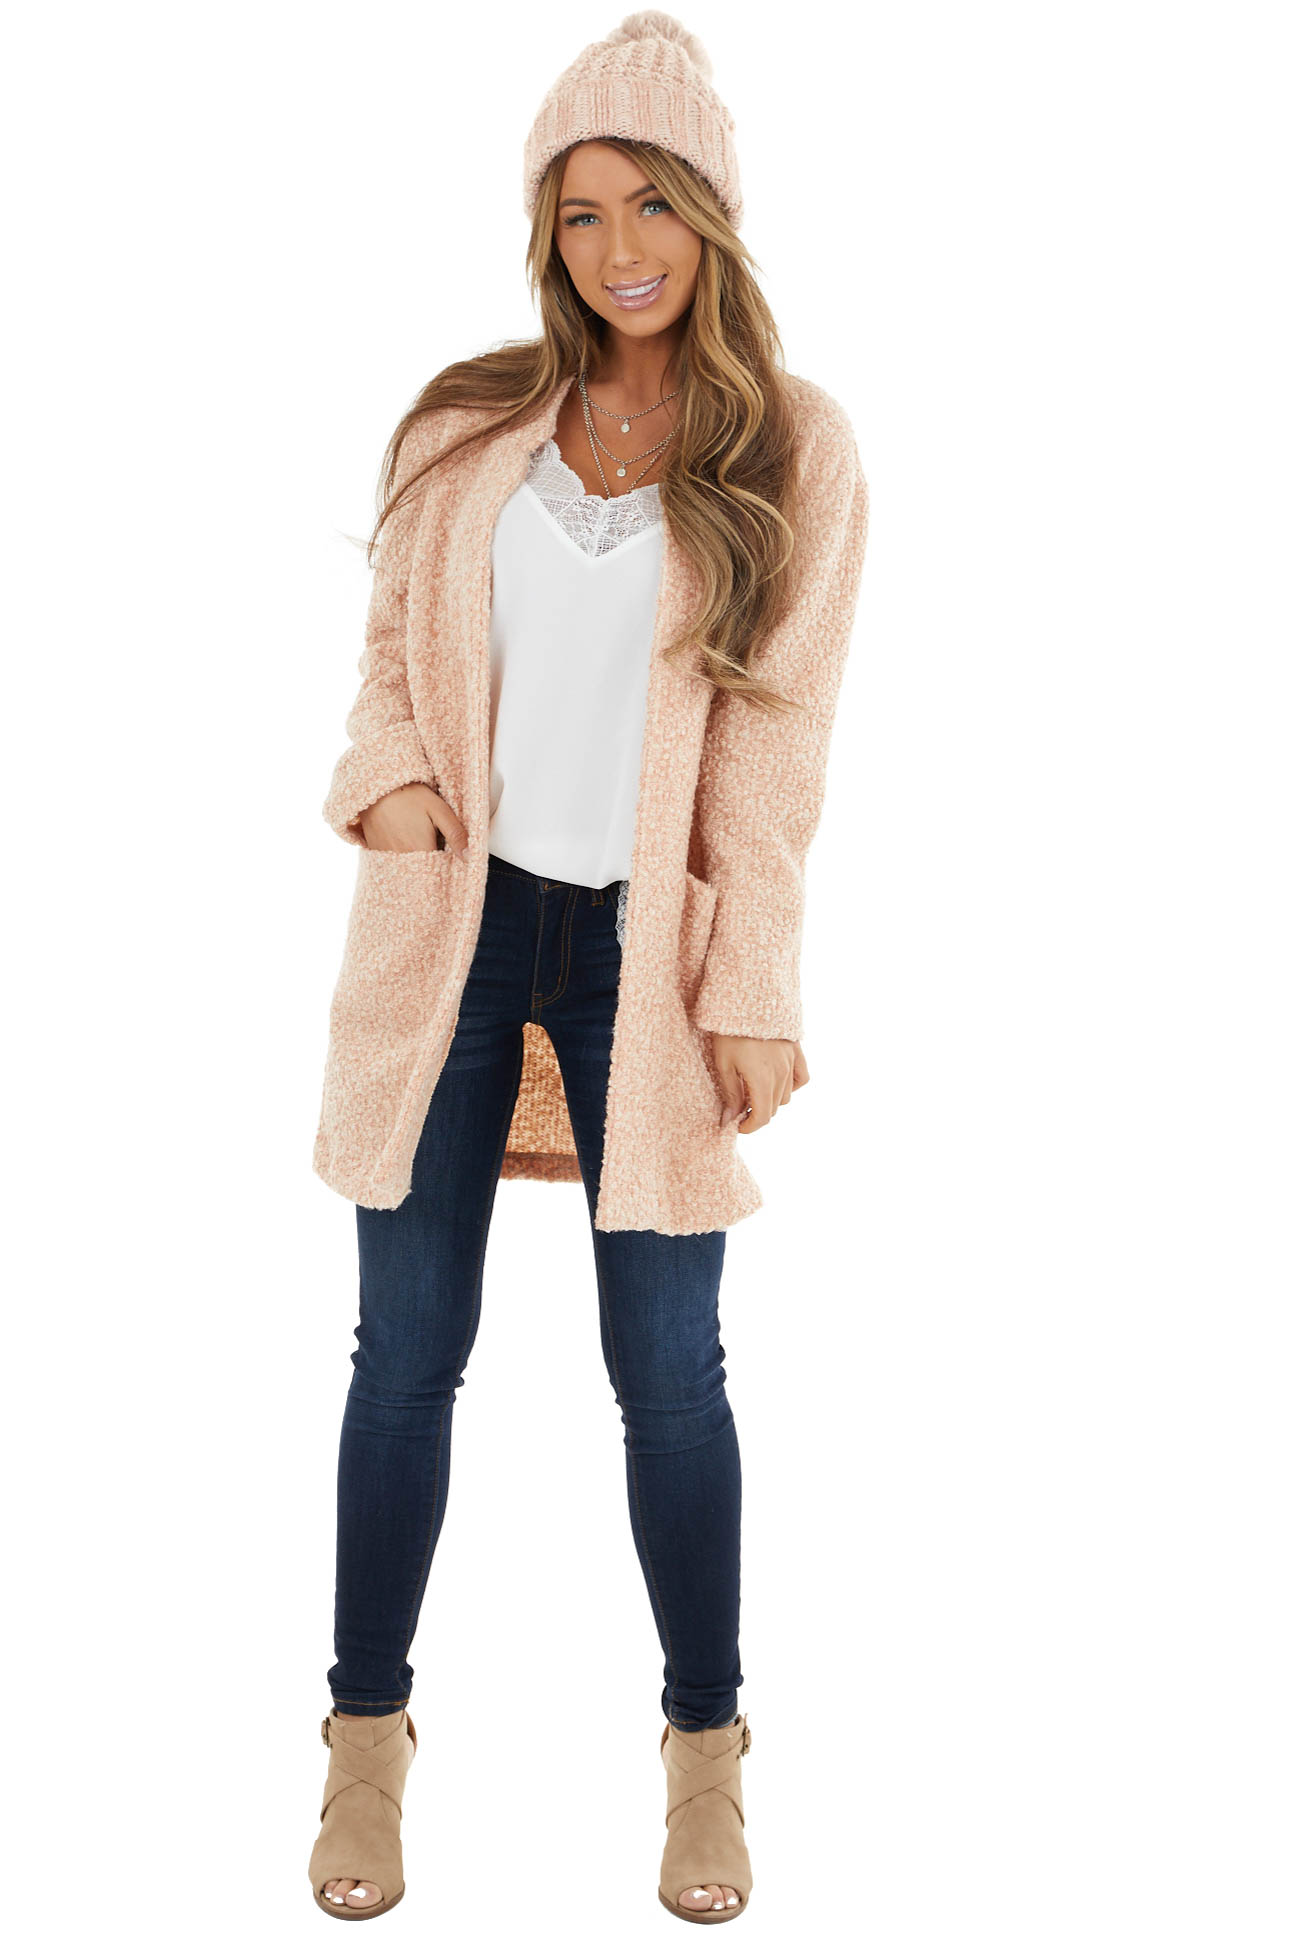 Dusty Blush Textured Knit Long Sleeve Jacket with Pockets